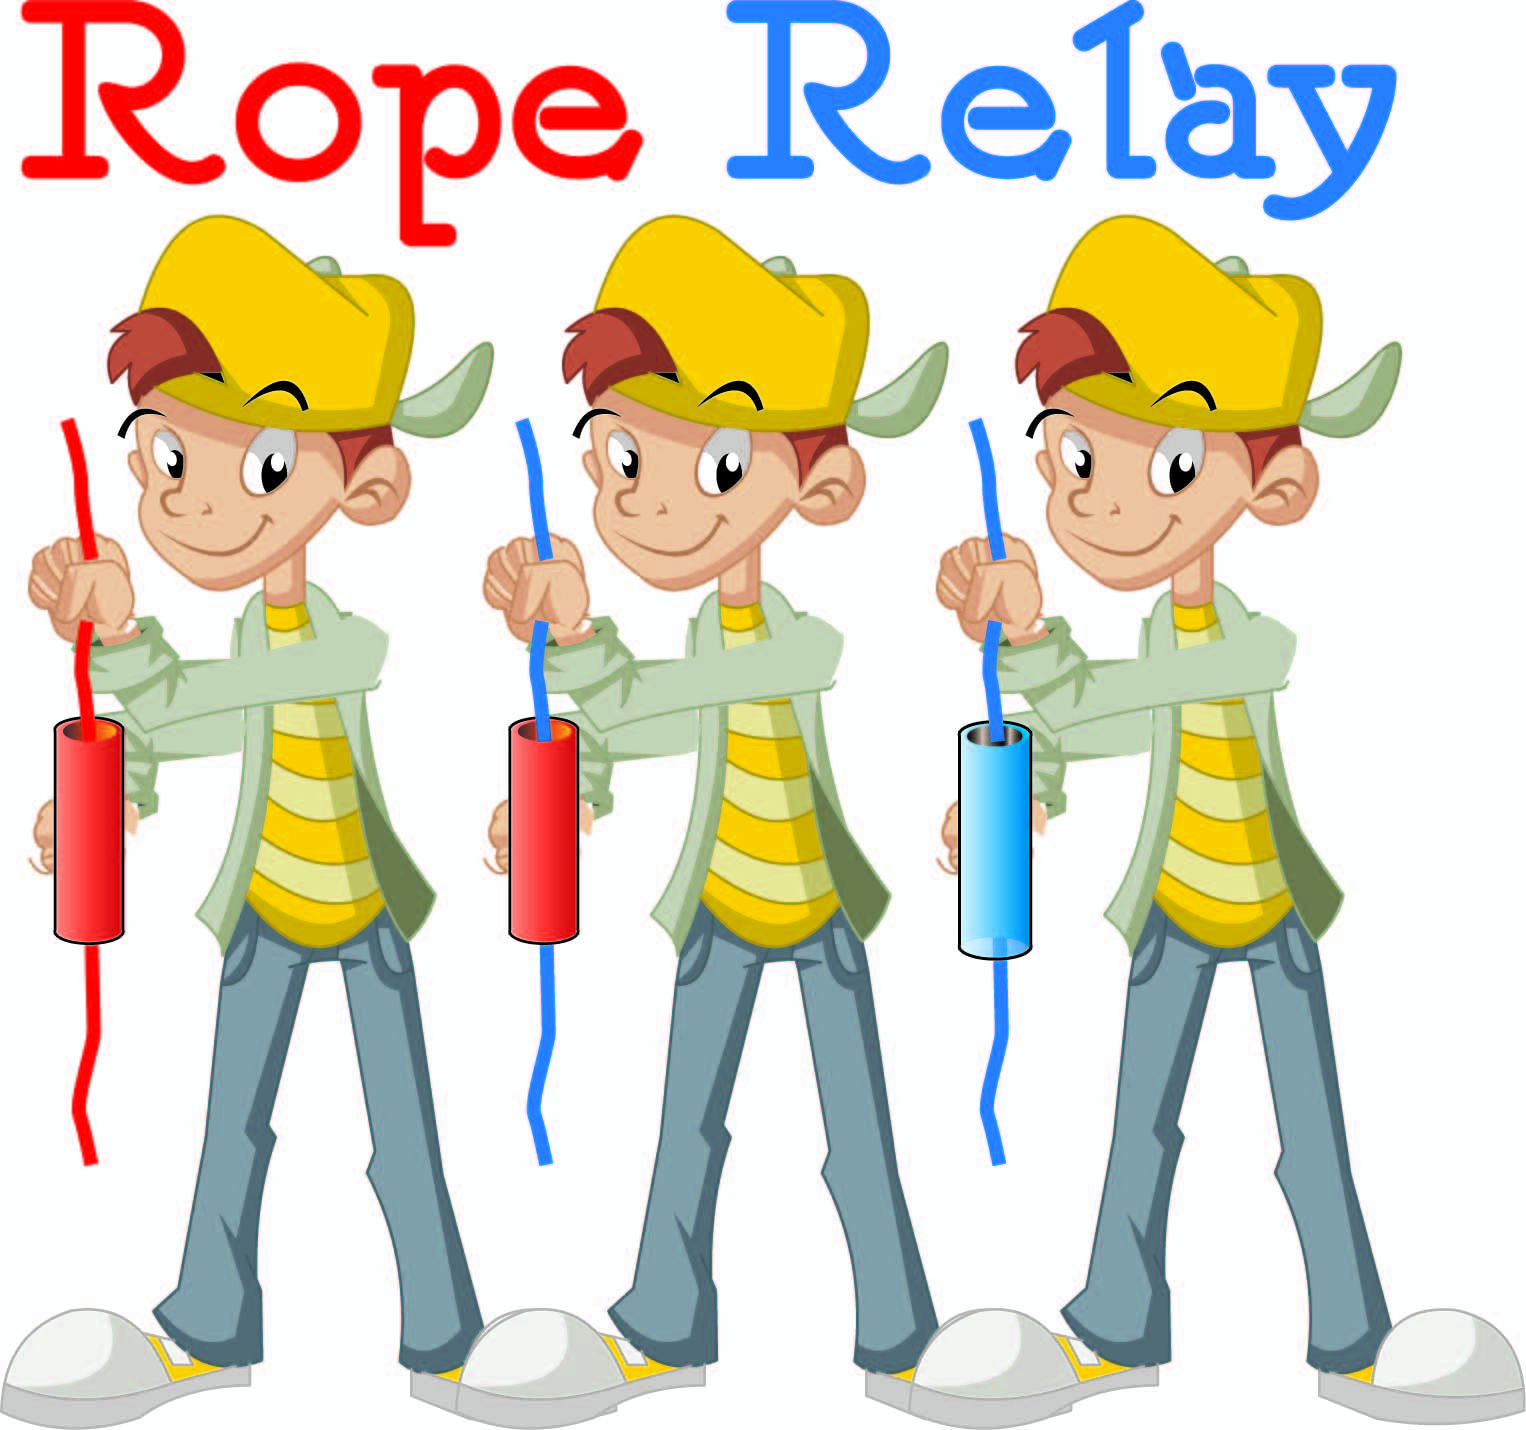 Rope Relay